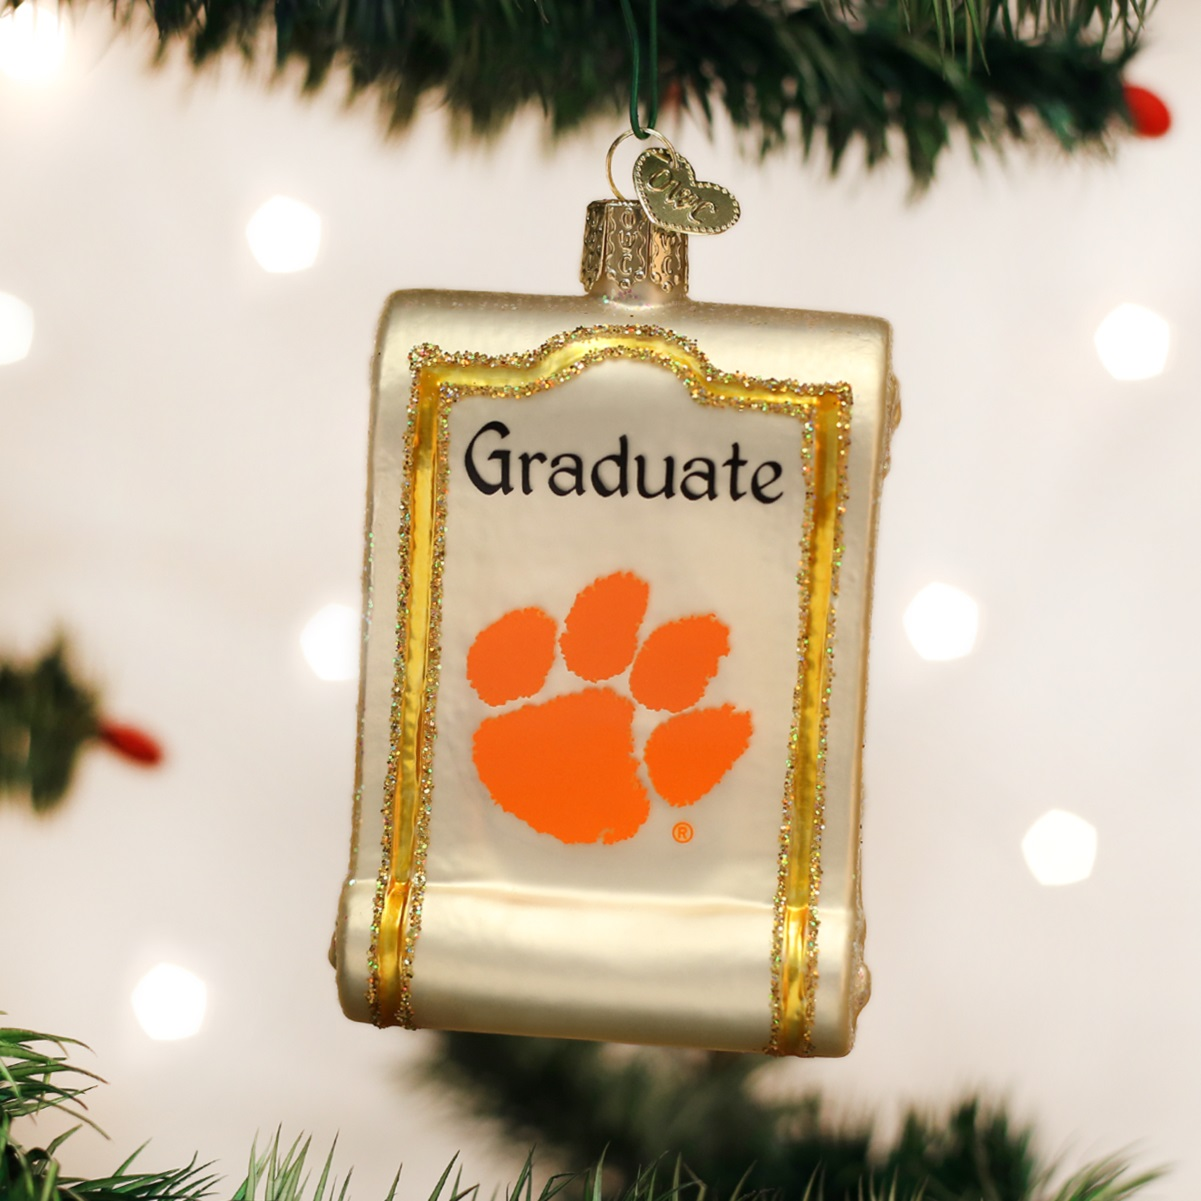 University of michigan christmas ornaments - Old World Christmas Clemson University Tigers Diploma Glass Ornament 61212 New